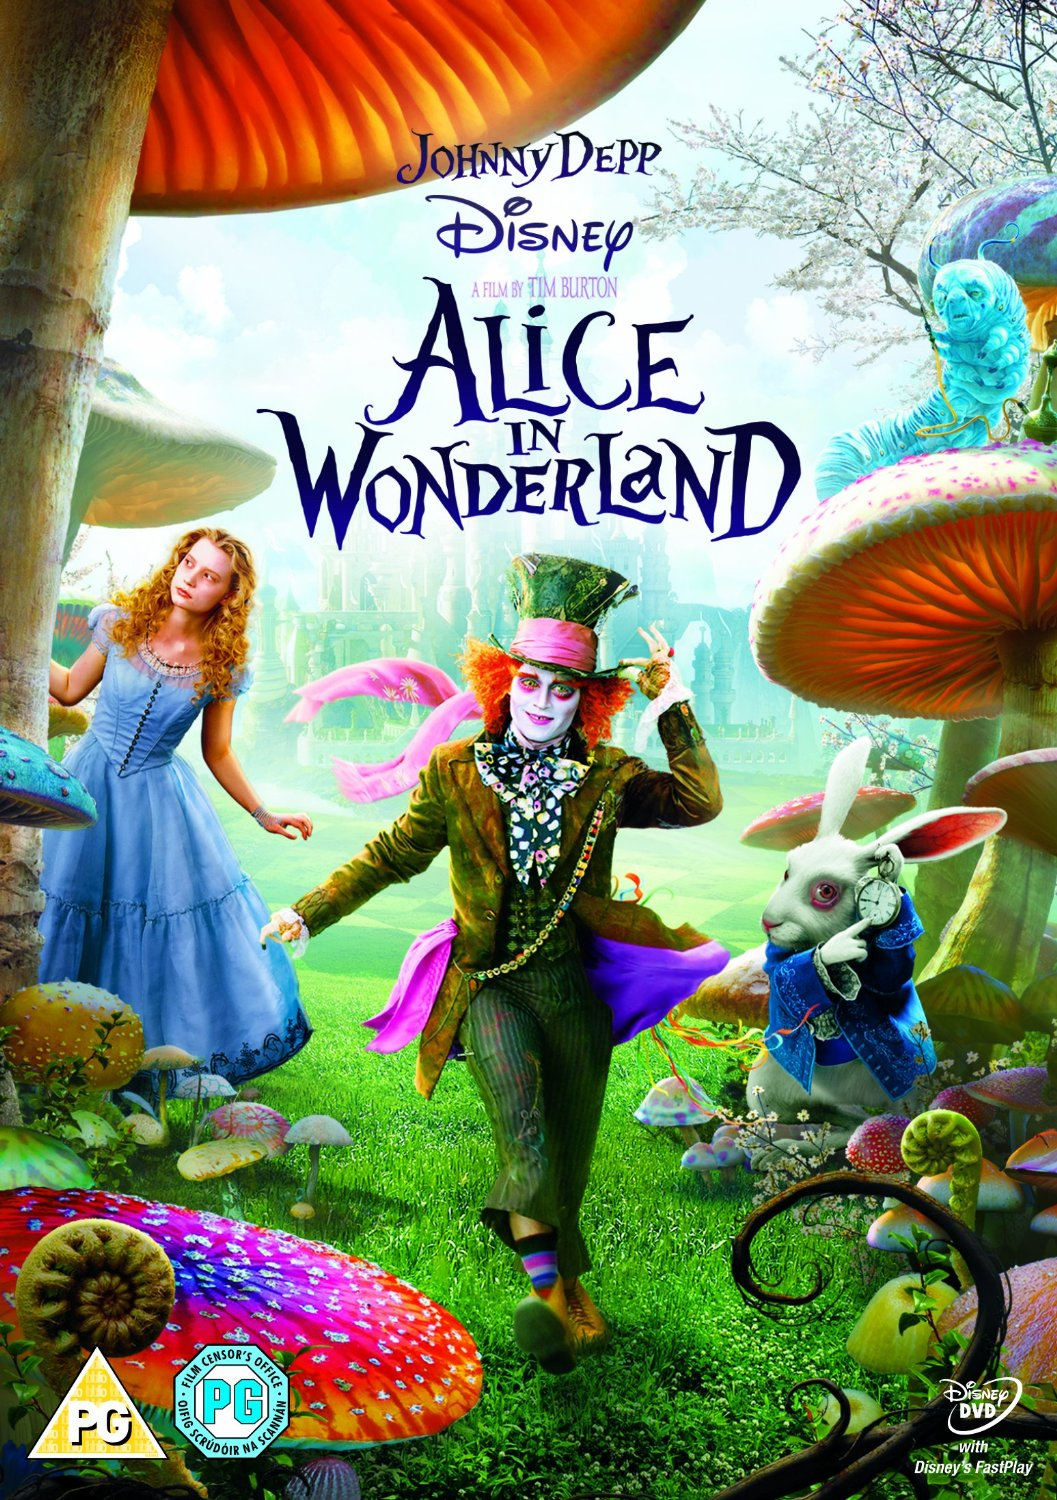 Johnny Depp's Alice Through The Looking Glass Goes Down The Rabbit Hole Of Financial Disaster